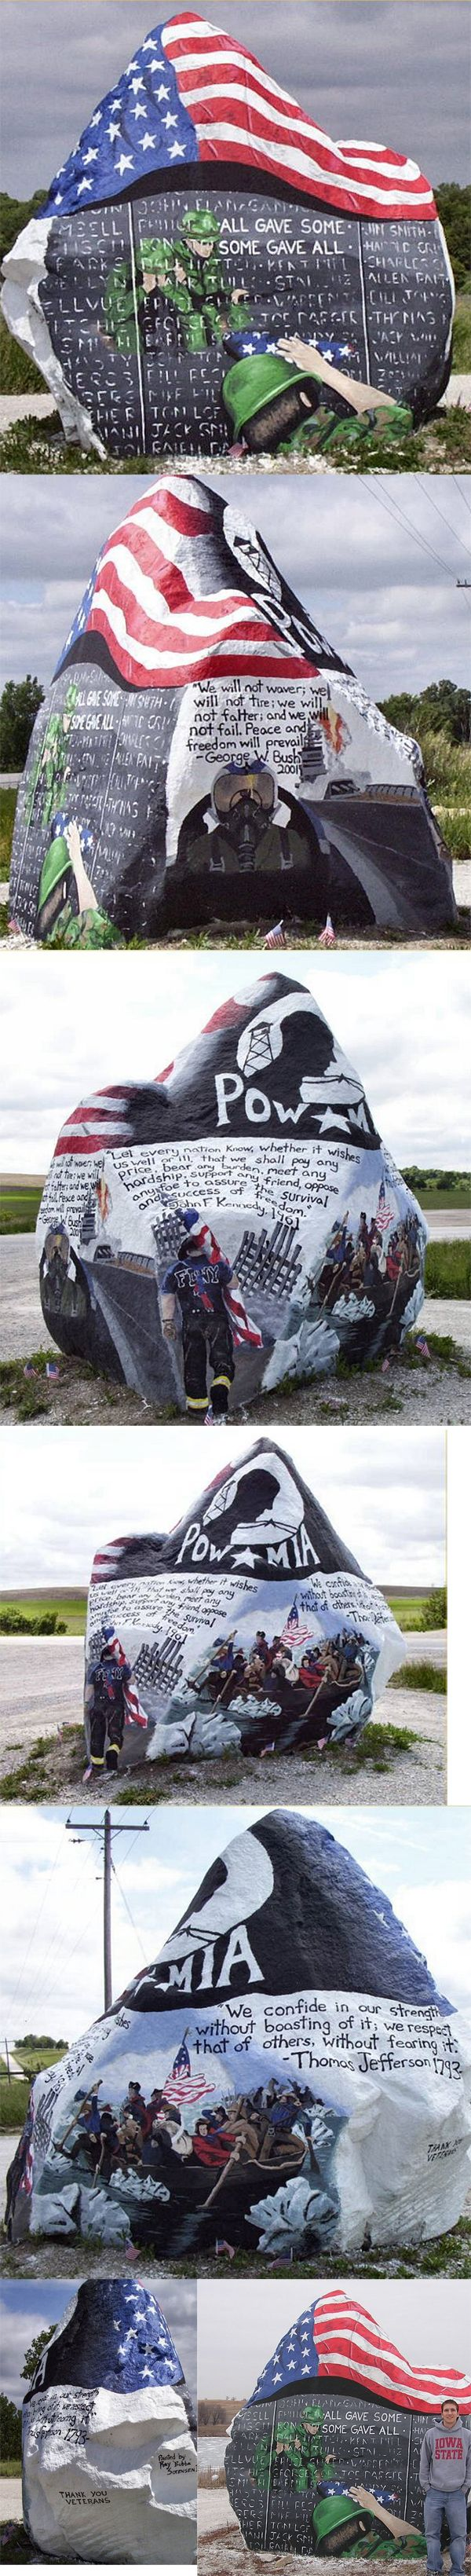 There  is a huge rock near a gravel pit  on Hwy 25 in rural  Iowa  ... For generations, kids have painted    slogans, names, and obscenities on this  rock, changing its character  many times.  A few months back, the rock received its latest paint job, and since  then  it has been left completely   undisturbed.    by Teenage artist Ray Sorenson.